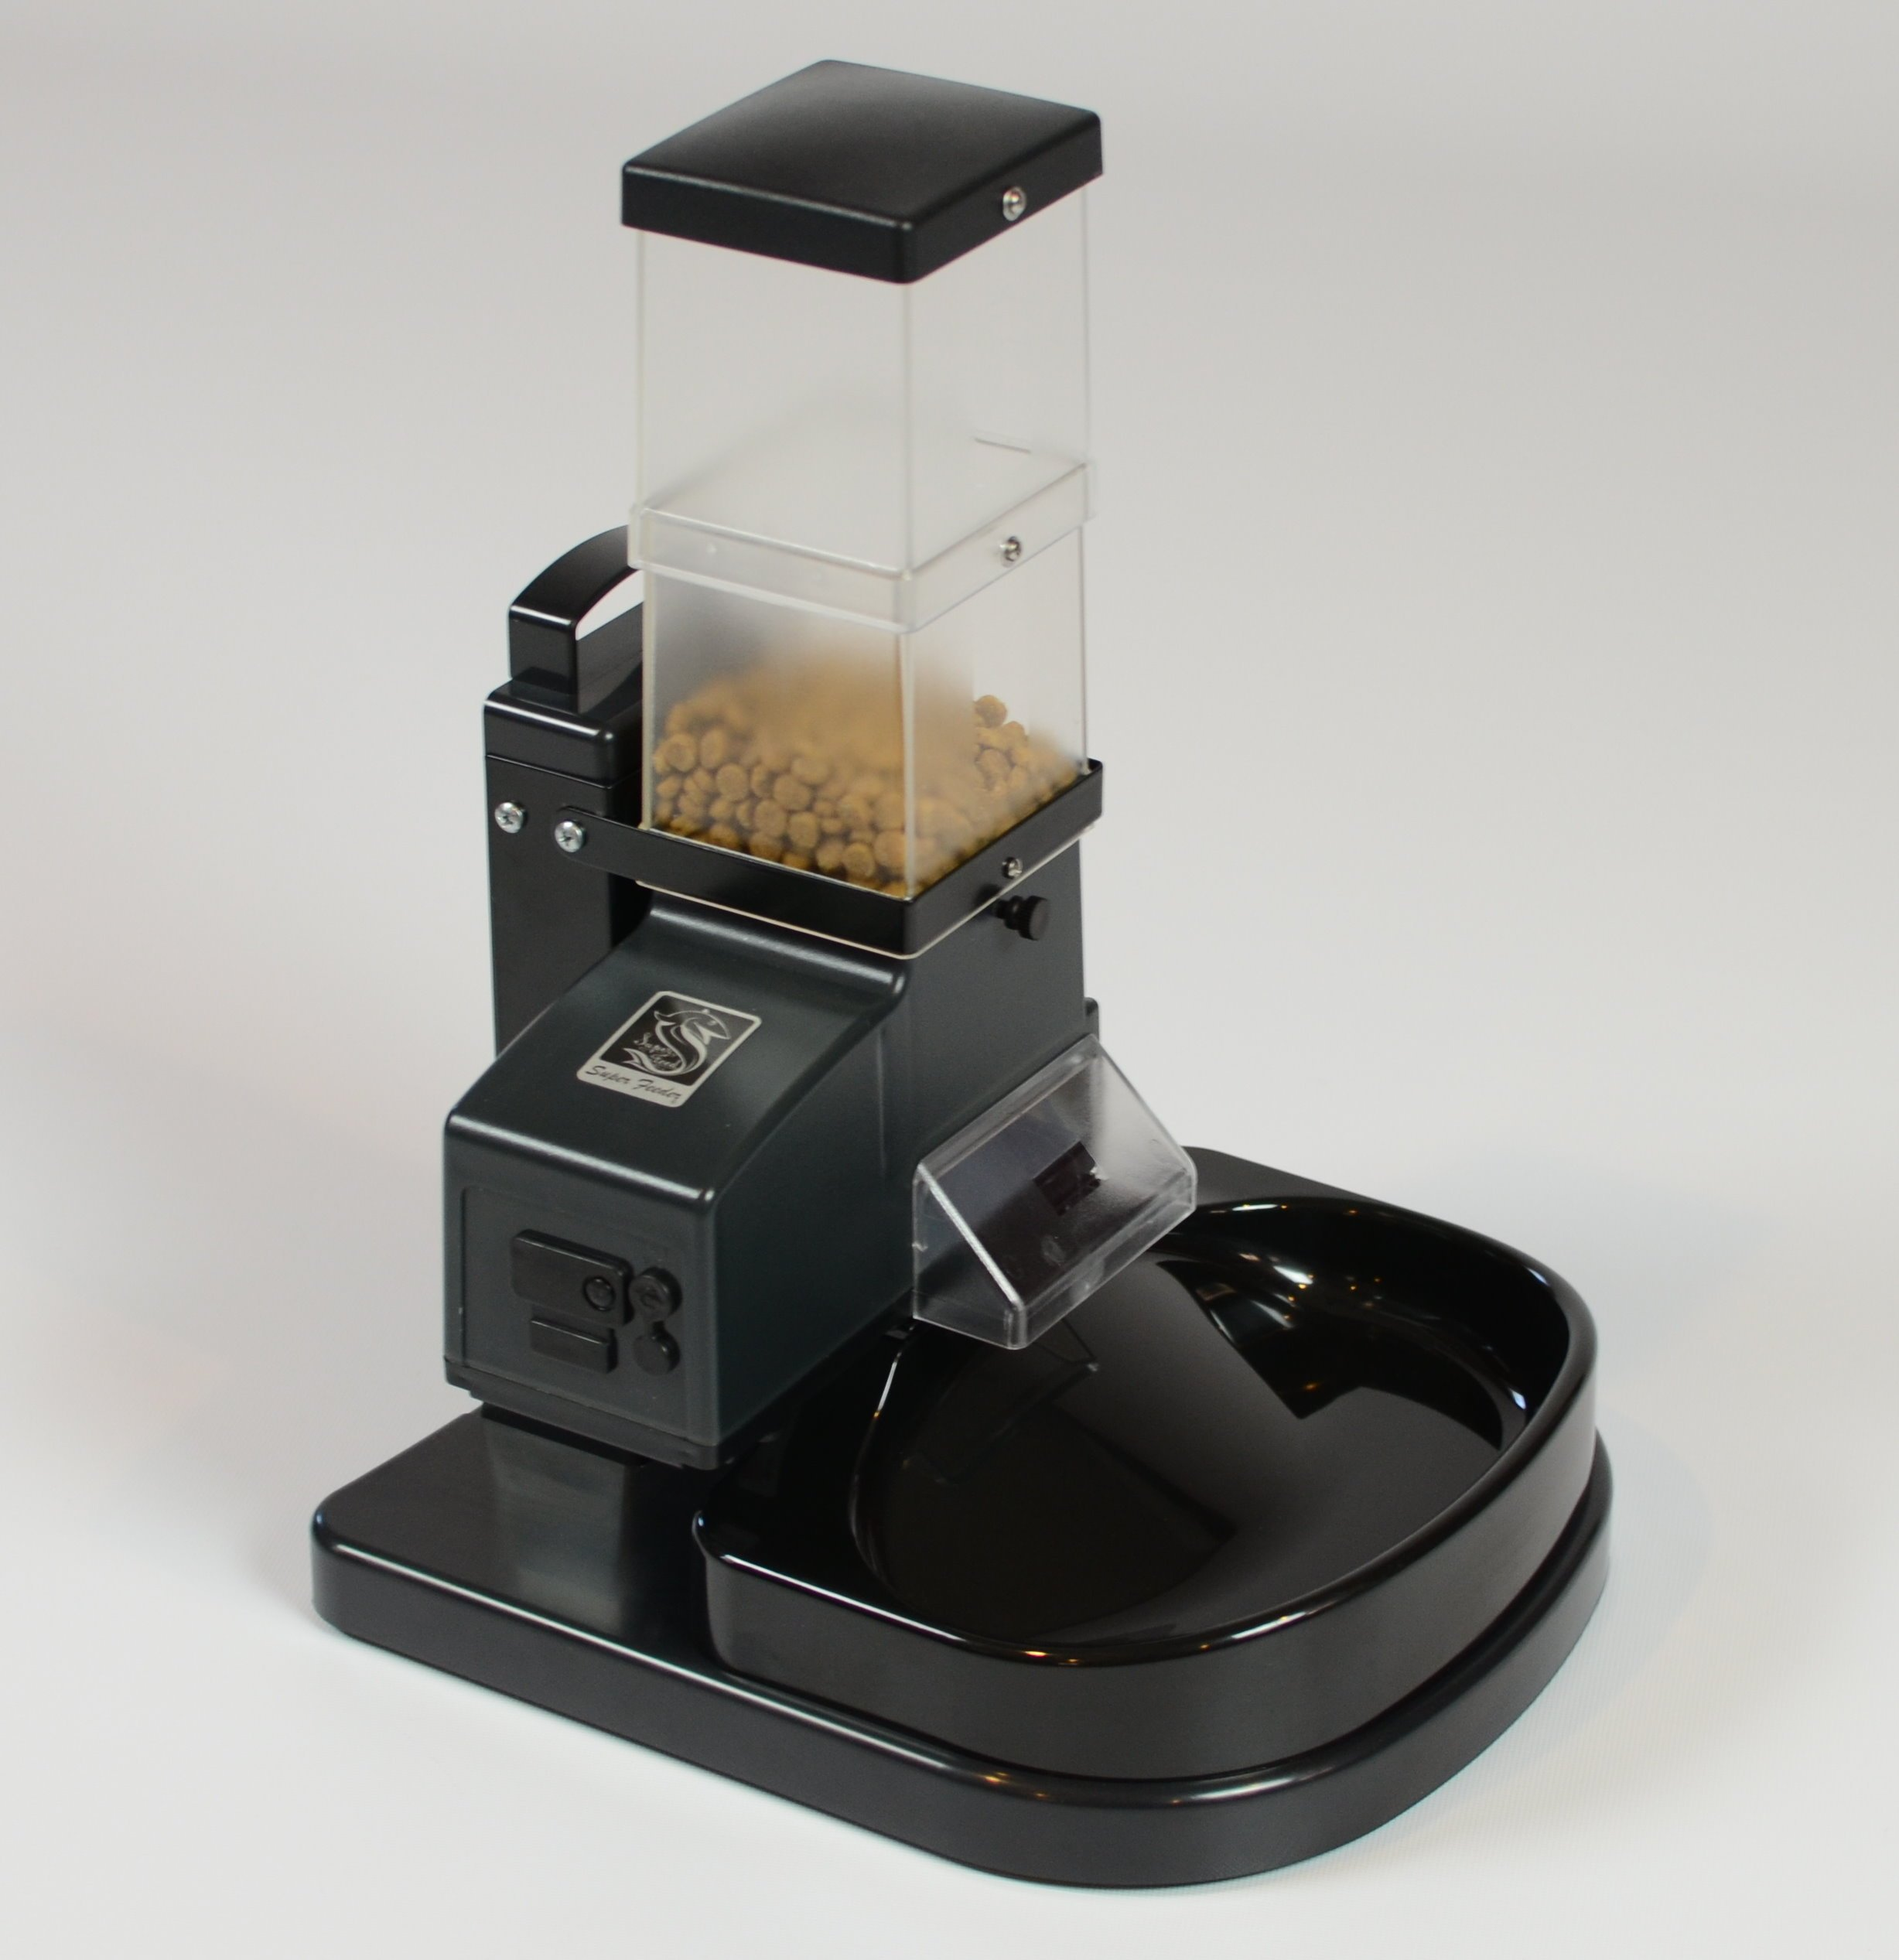 Automatic Cat Feeder, CSF-3 Super Feeder, Stand/Bowl, Analog Timer